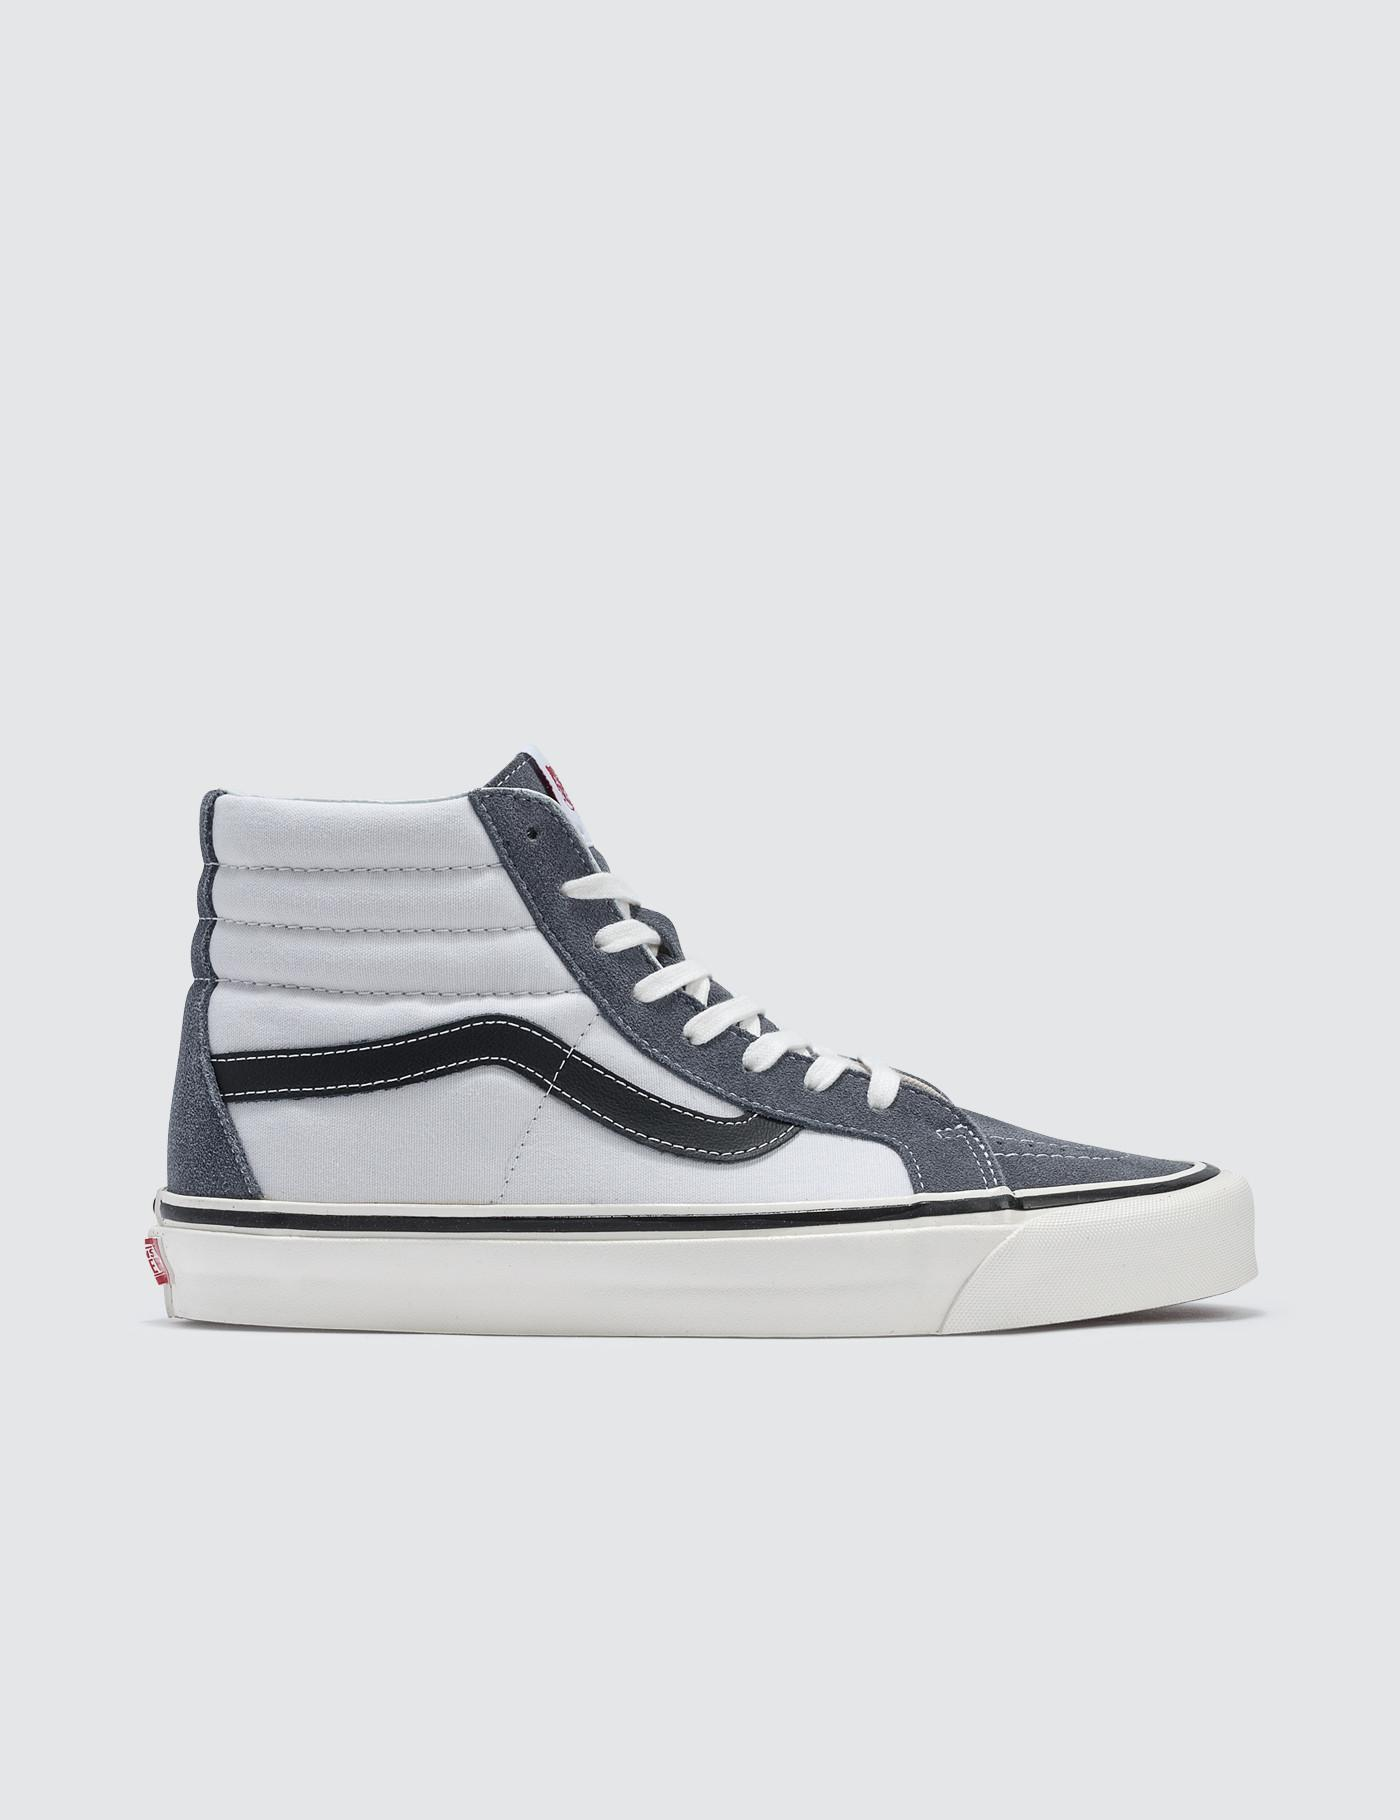 76ebc0f695bda8 Lyst - Vans Sk8-hi 38 Dx in White for Men